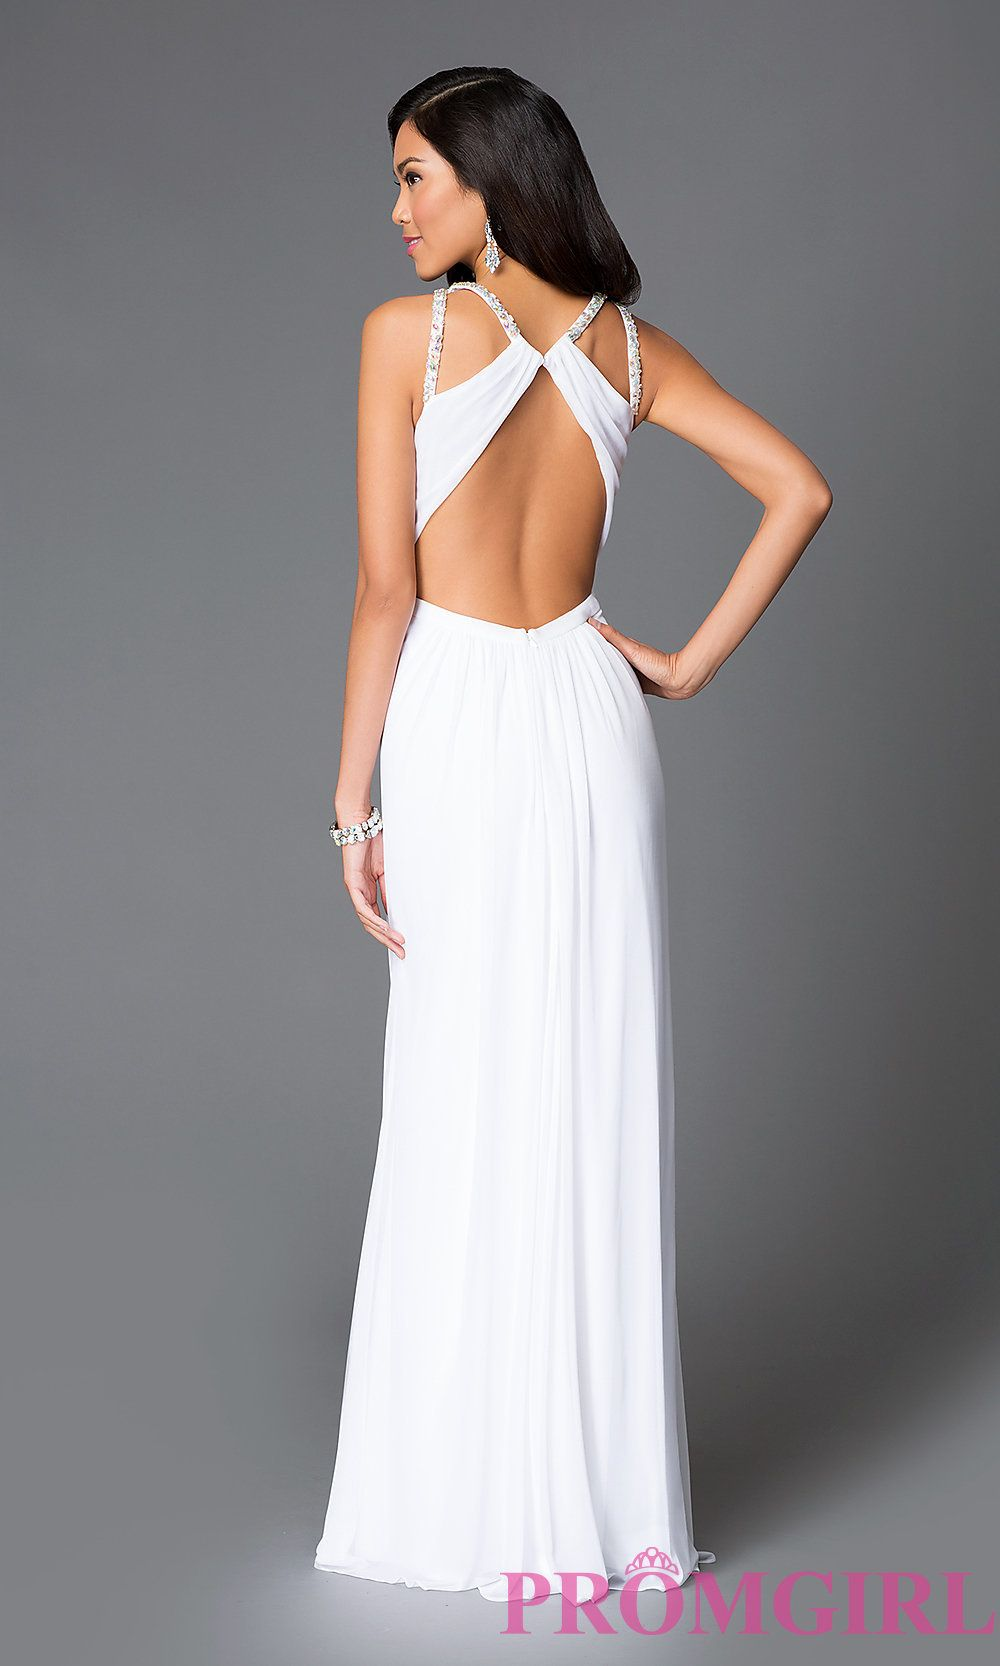 9919b481c0 Image of long high neck sheer keyhole cut out open back beaded details  white dress Front Image